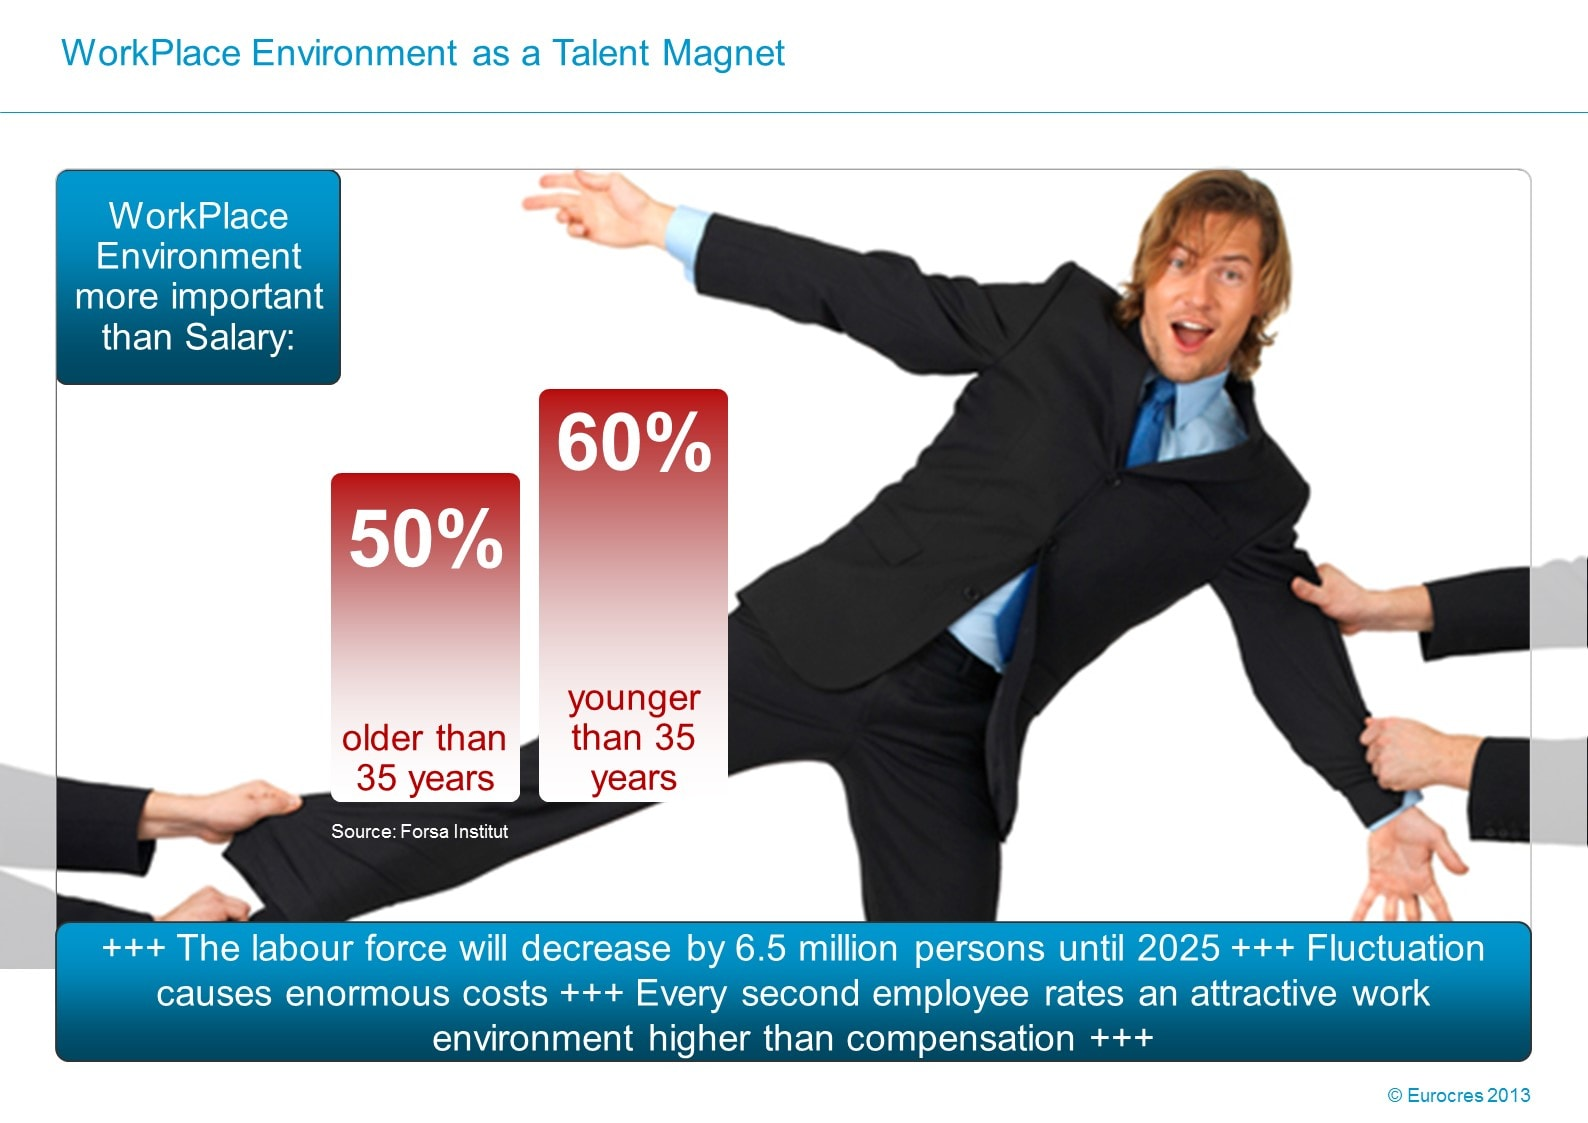 WorkPlace Flash: WorkPlace Environment as a Talent Magnet